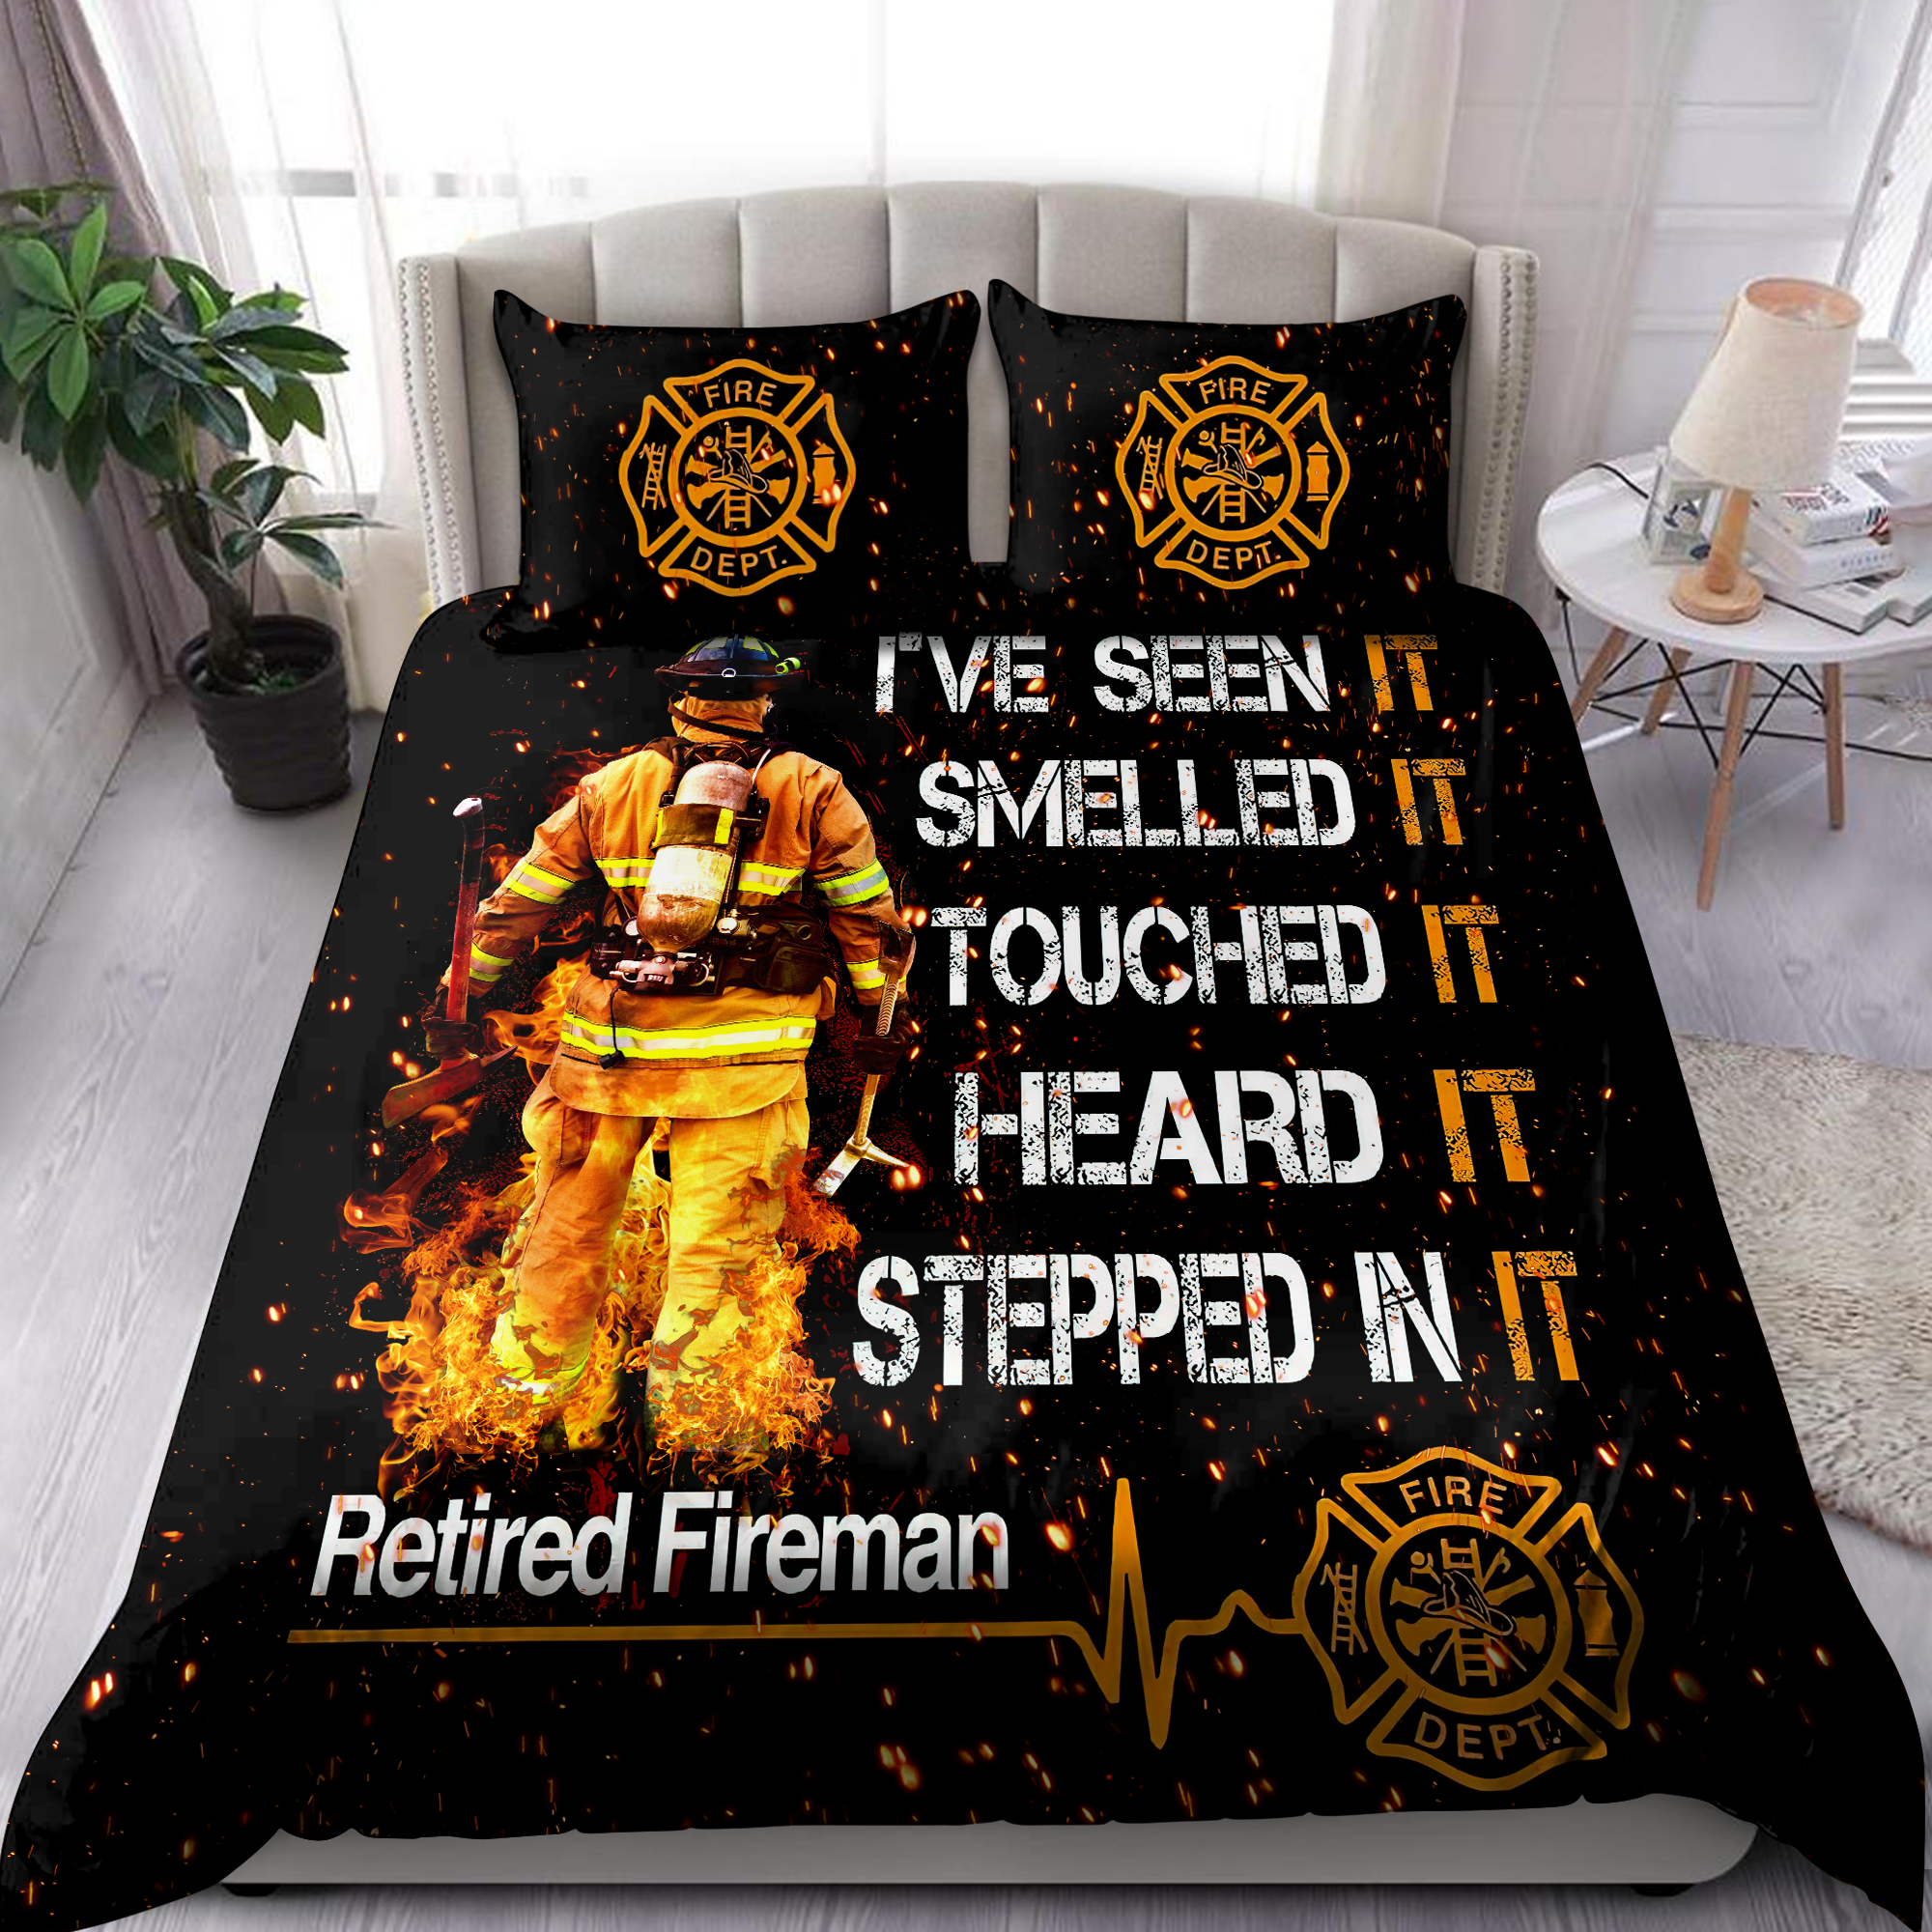 Retired Firefigter Bedding Set